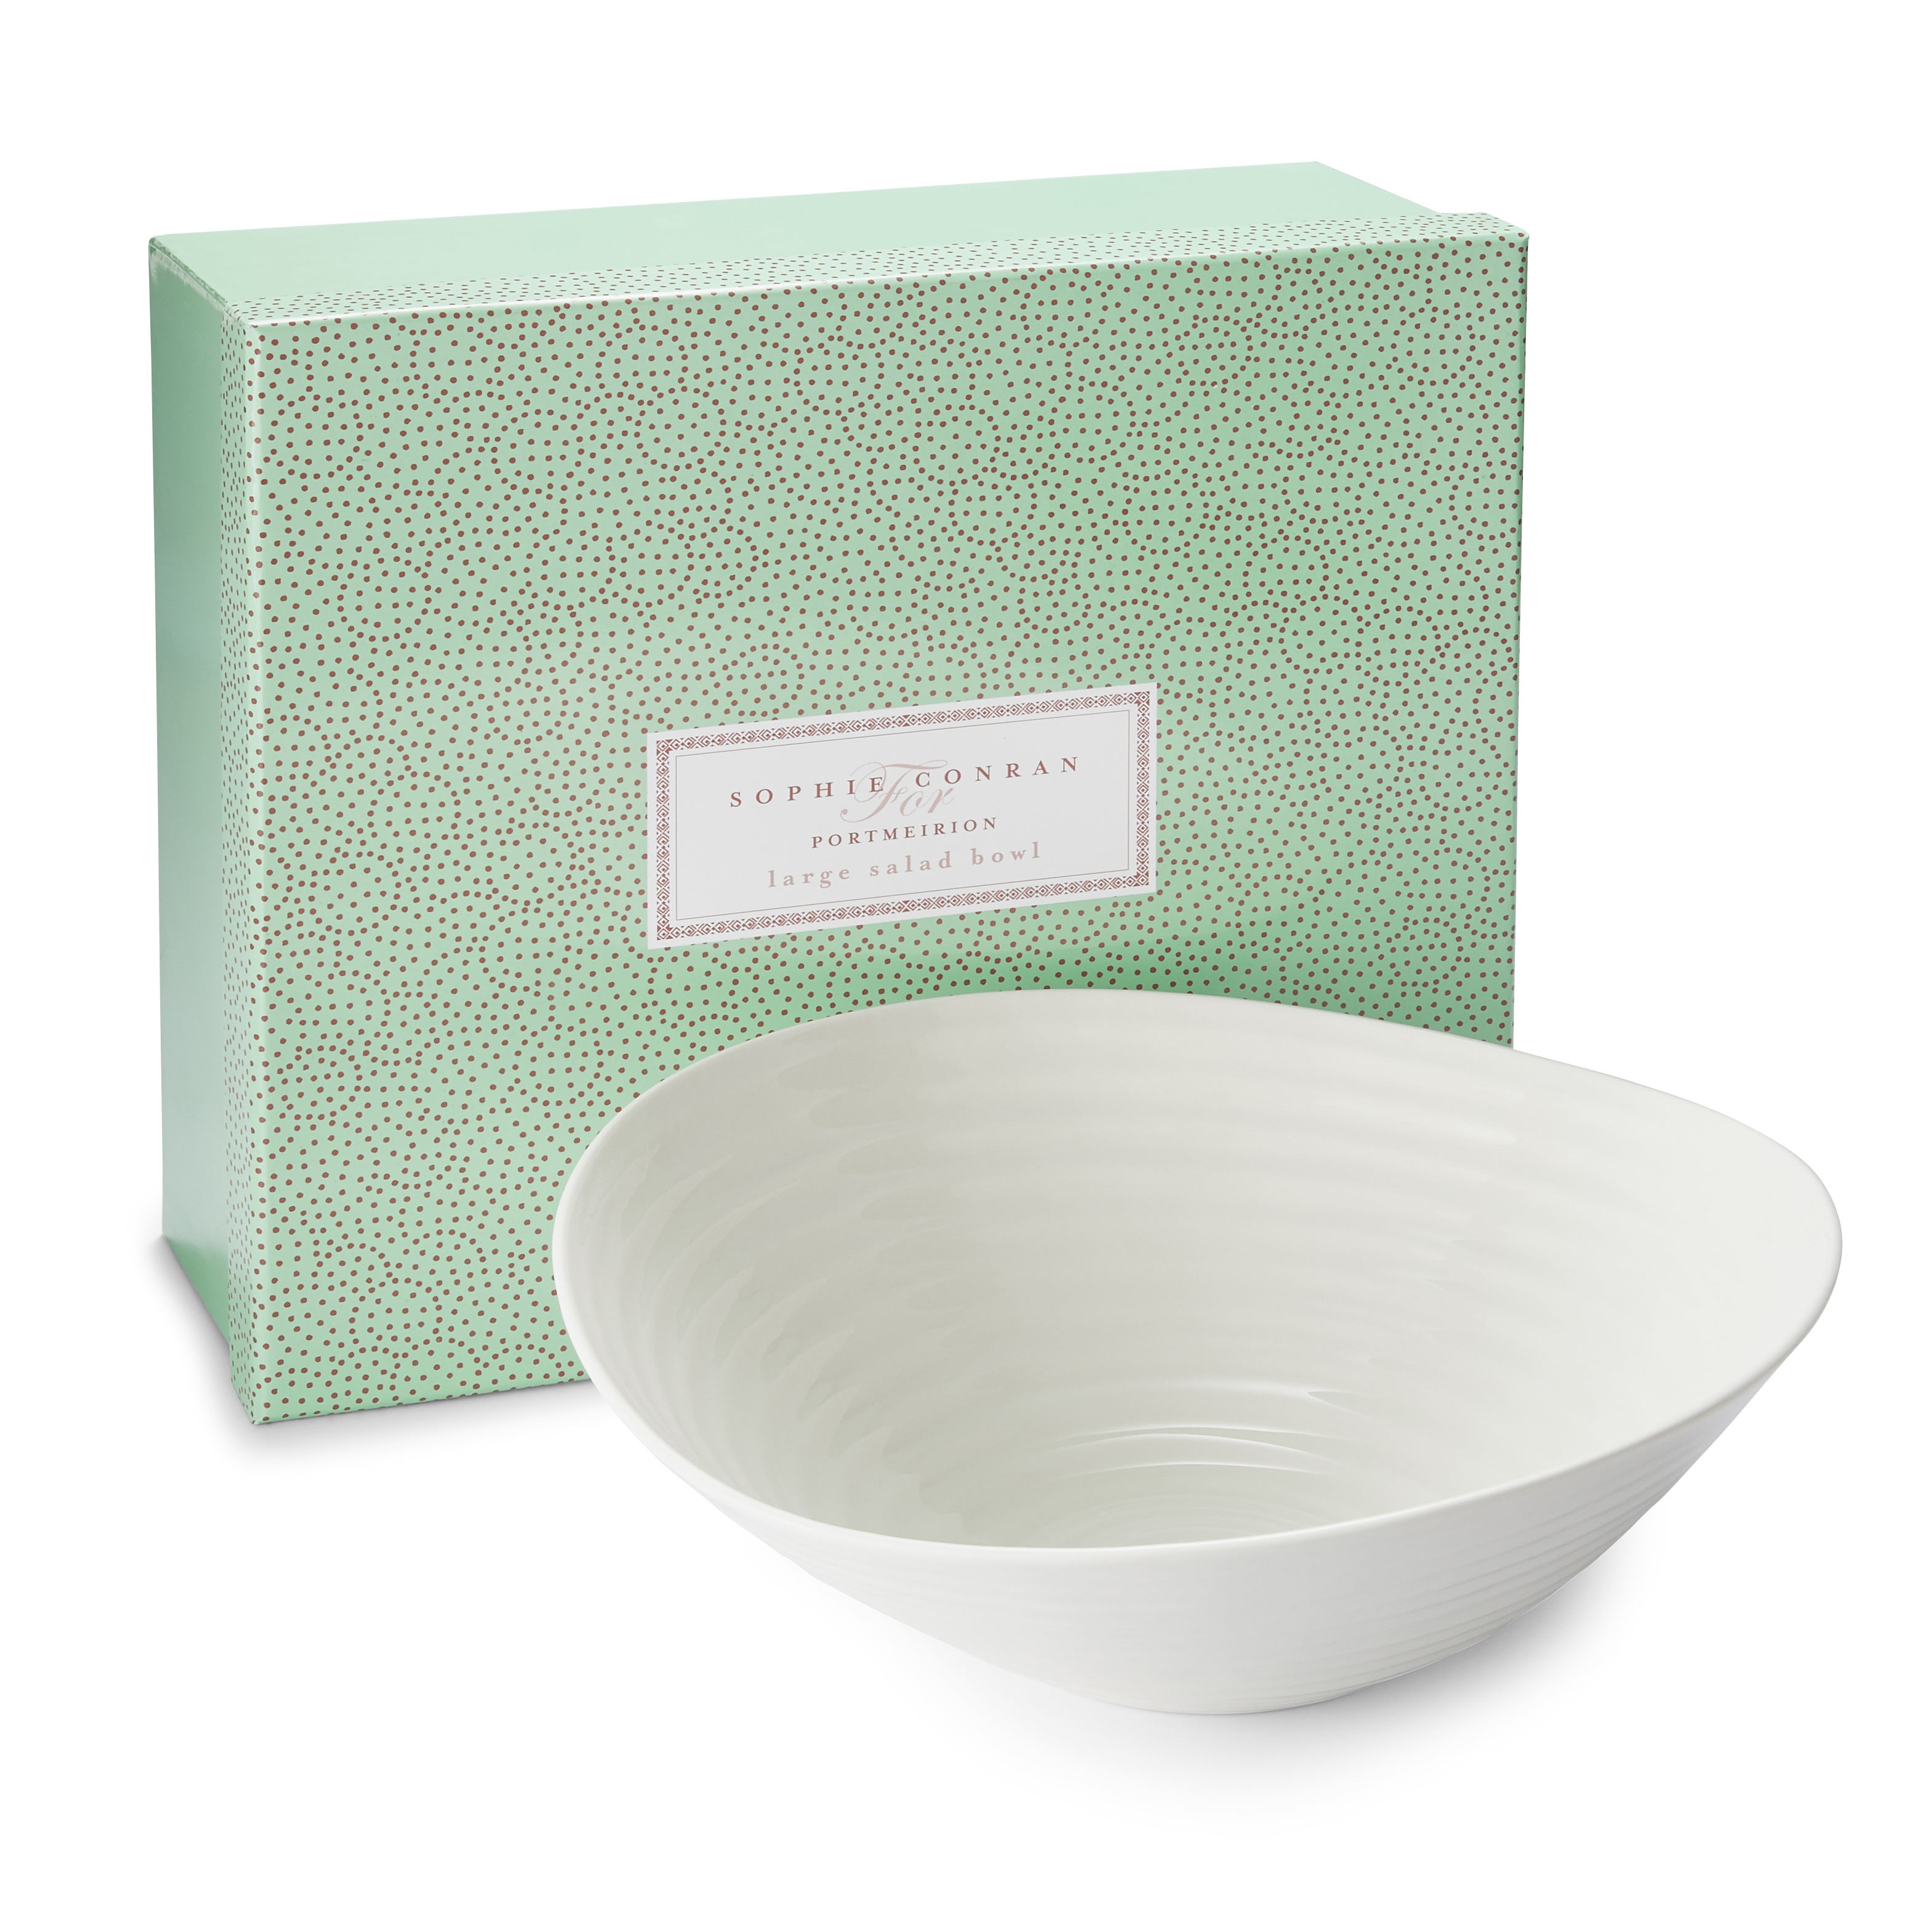 Portmeirion Sophie Conran White Large Salad Bowl image number 2